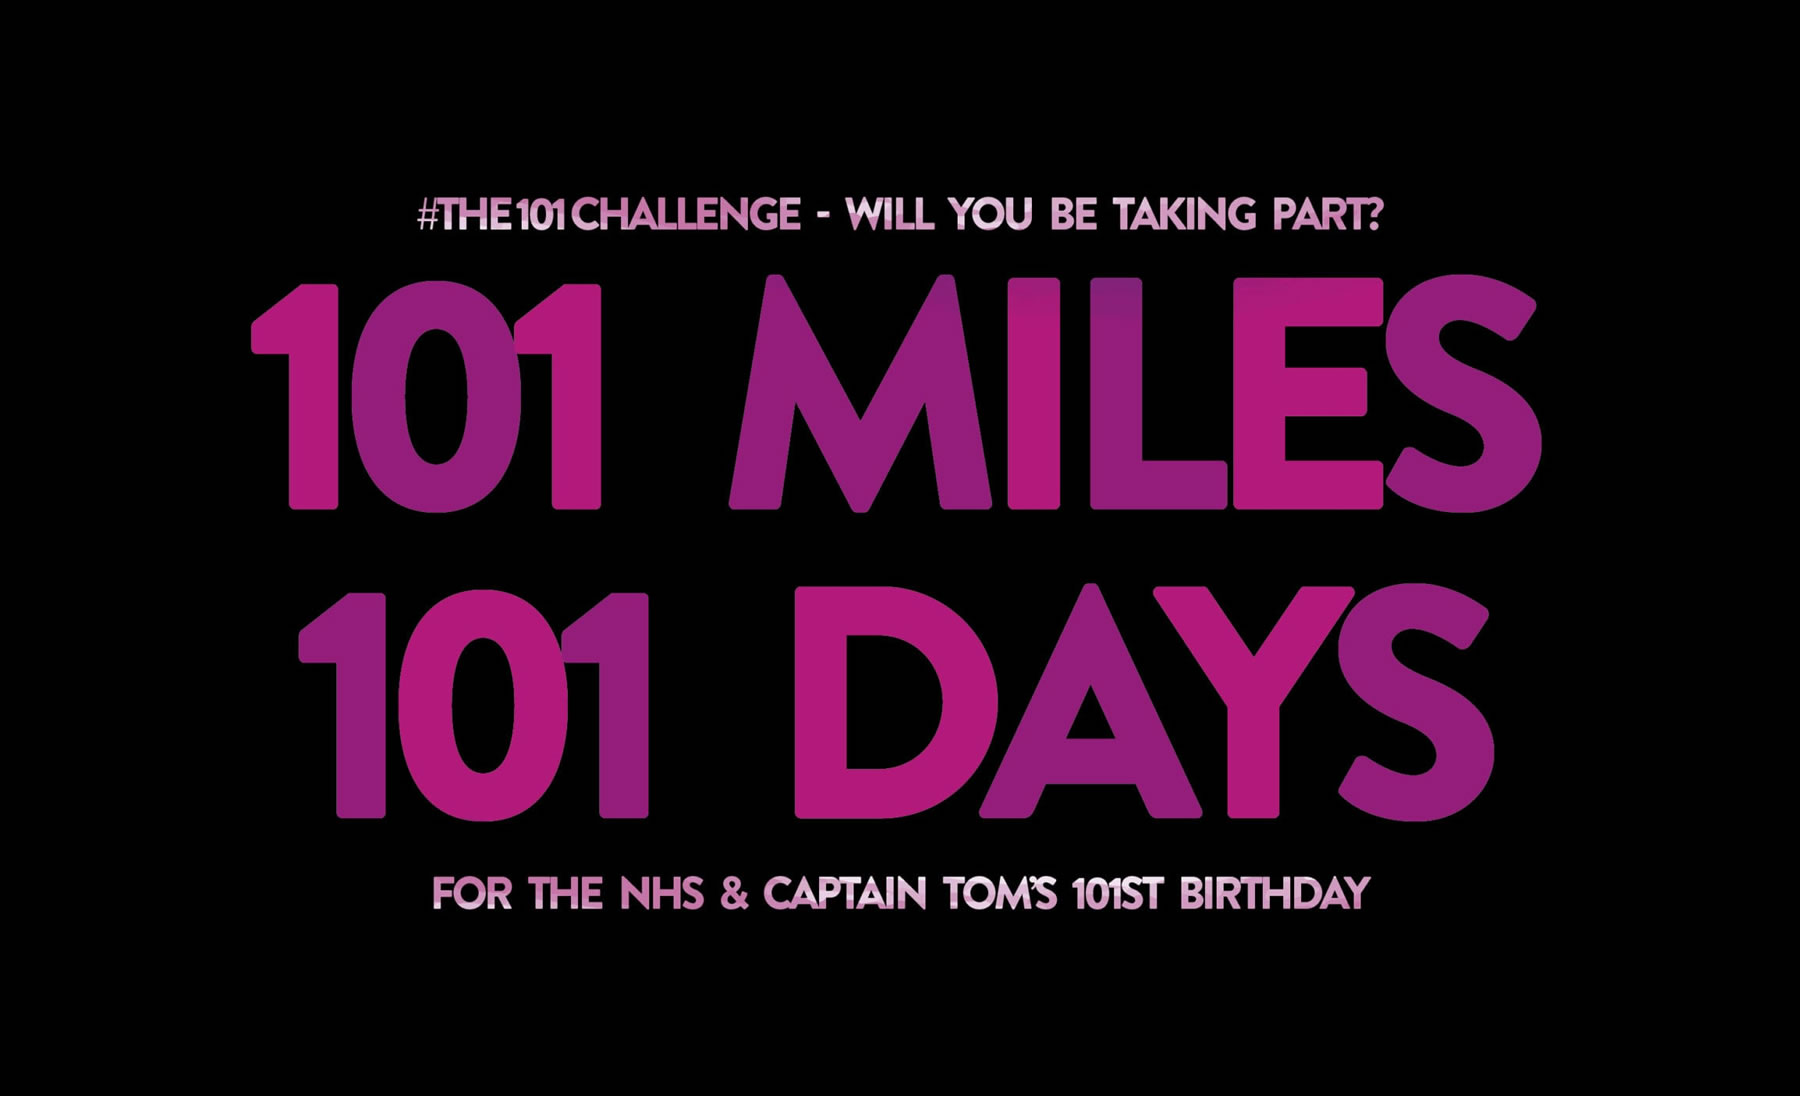 Brooklands College Students and Staff - NHS Fundraiser 101 Challenge